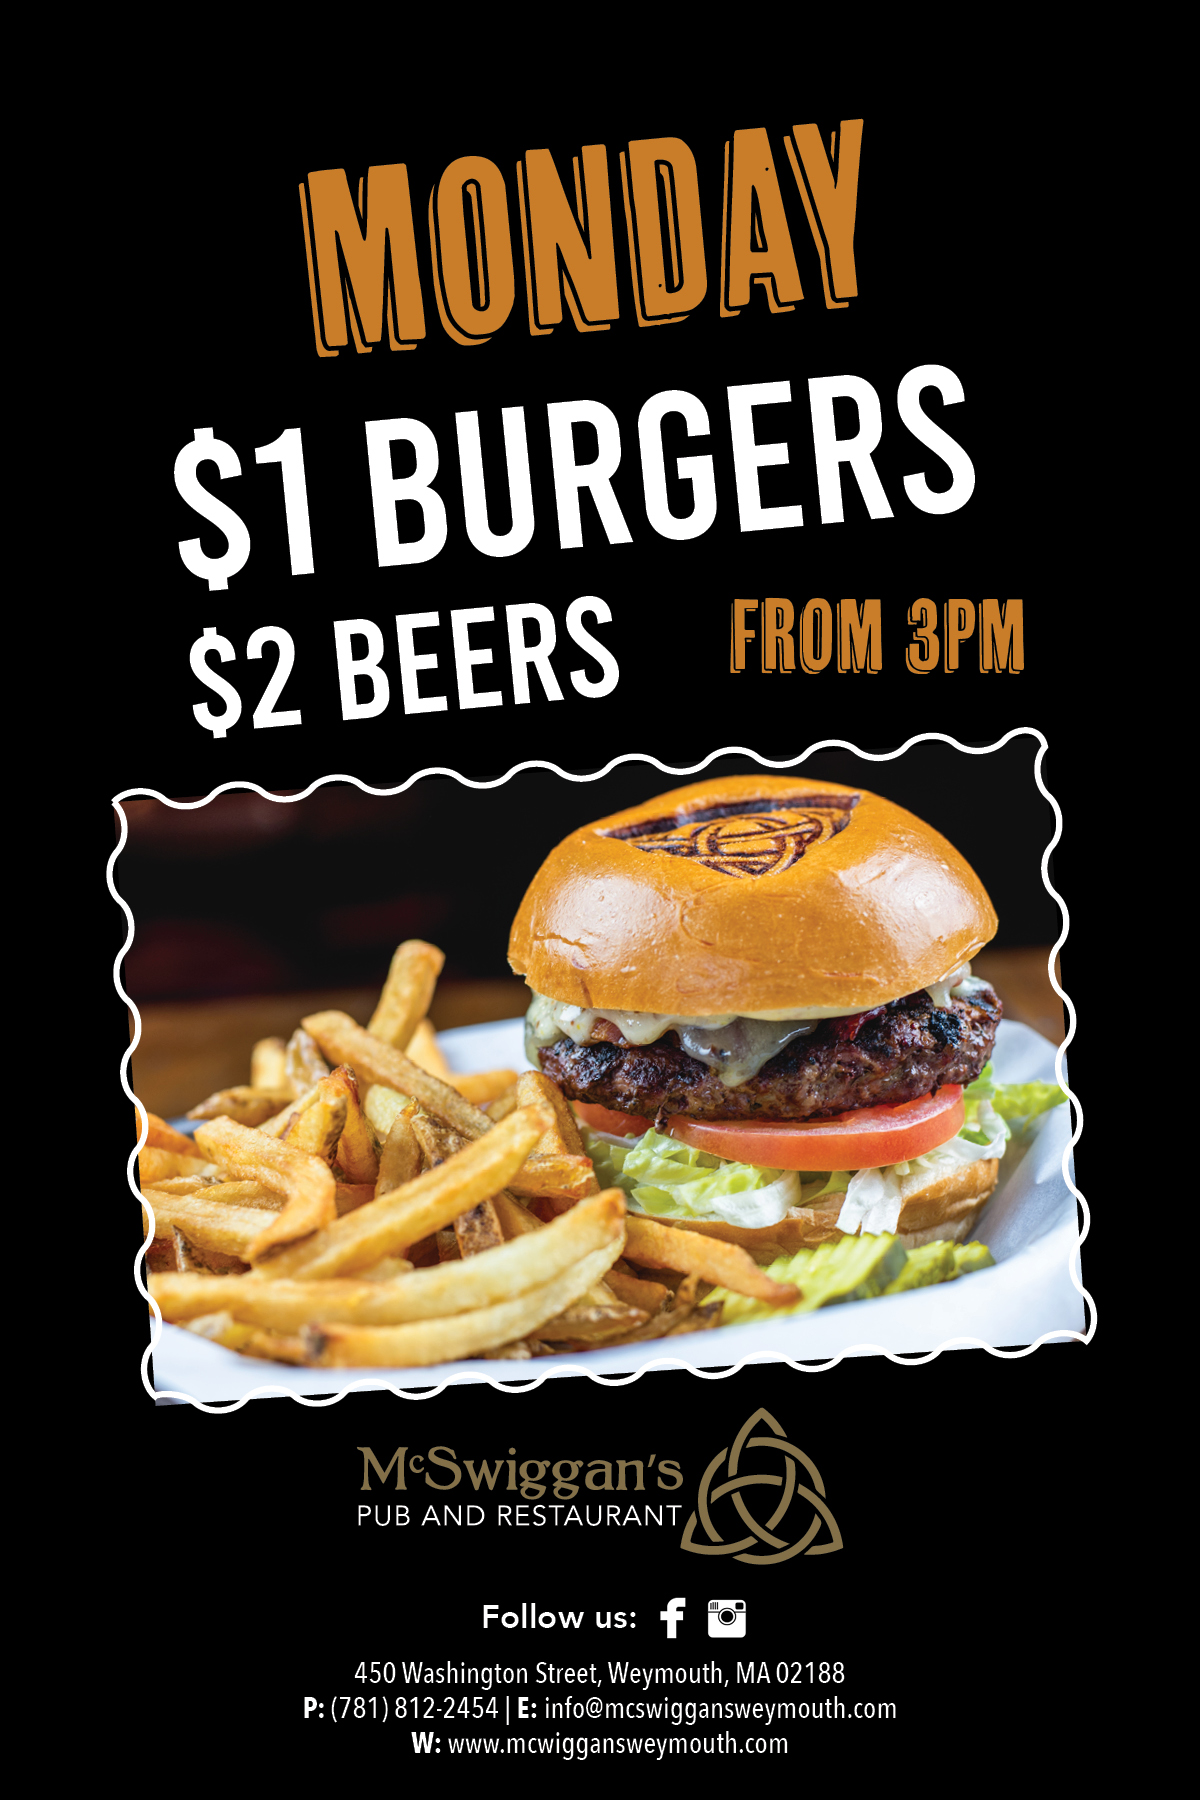 Monday $1 Burgers | $2 Beers from 3pm